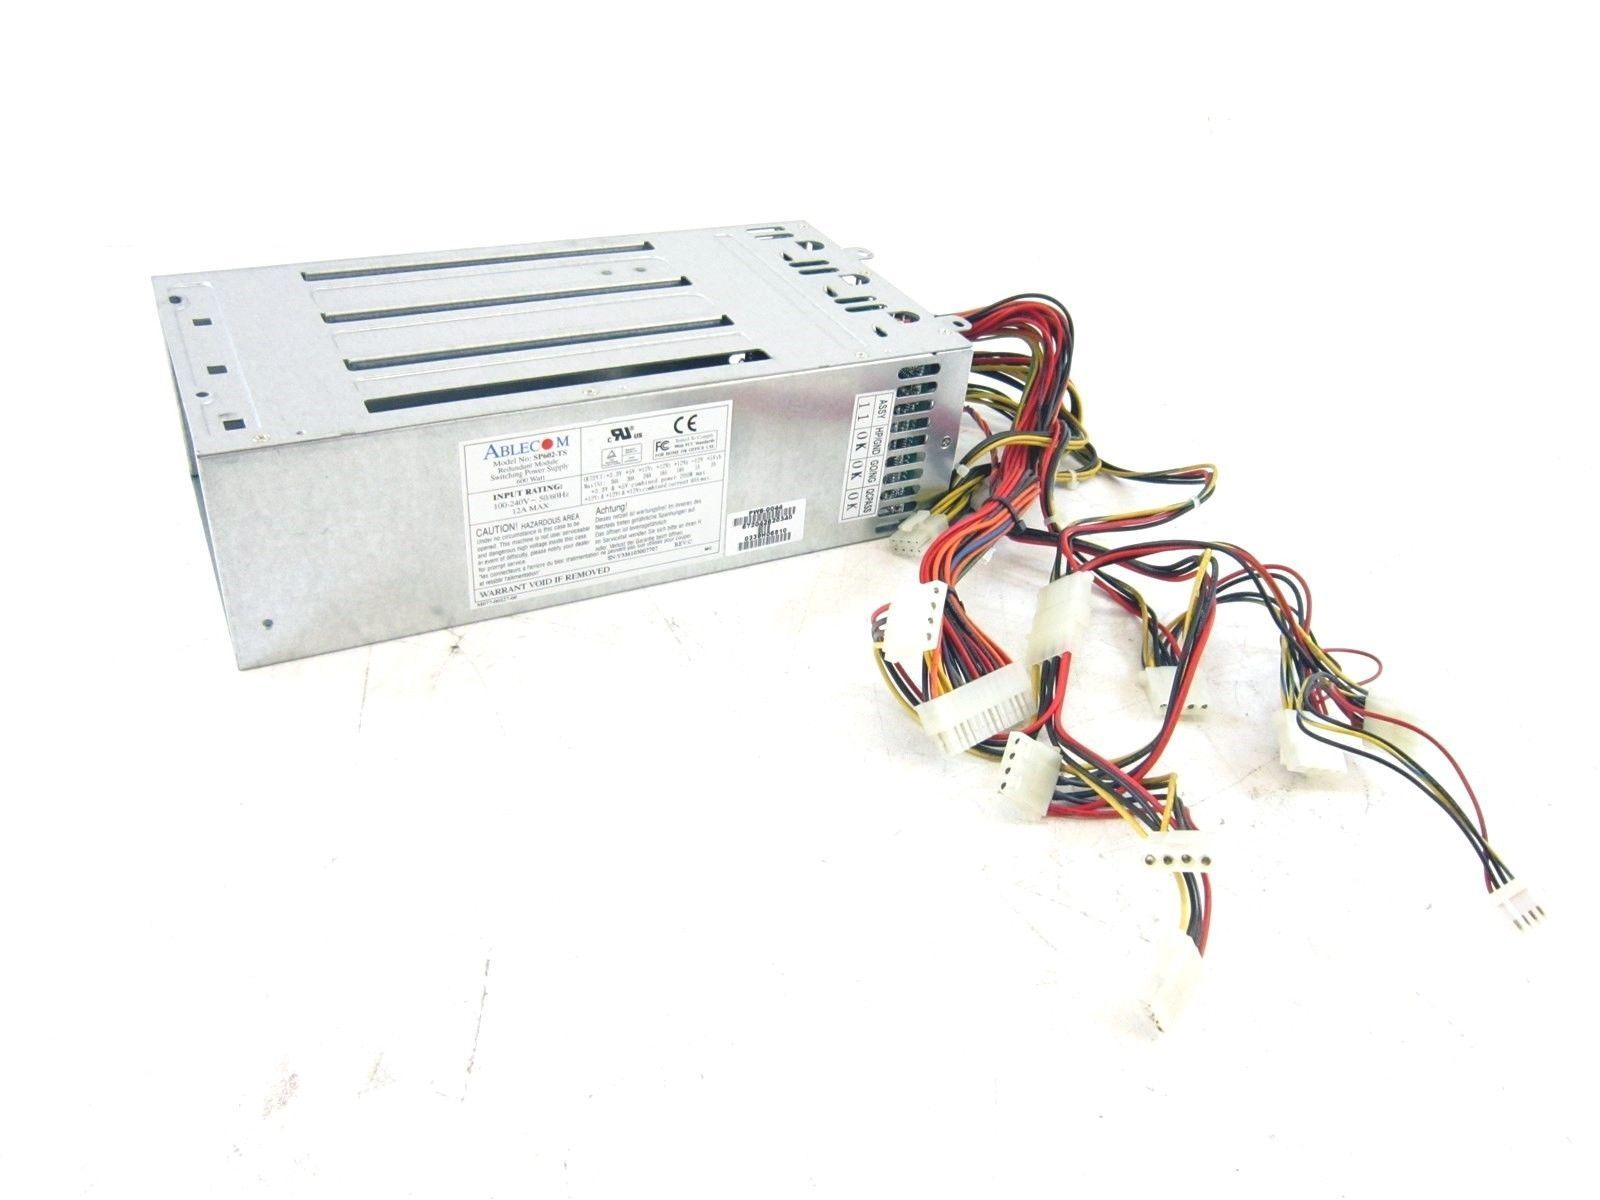 Supermicro 600W Triple Redundant Power Supply (SP602-TS) For SC742 Chassis - PWS-0044